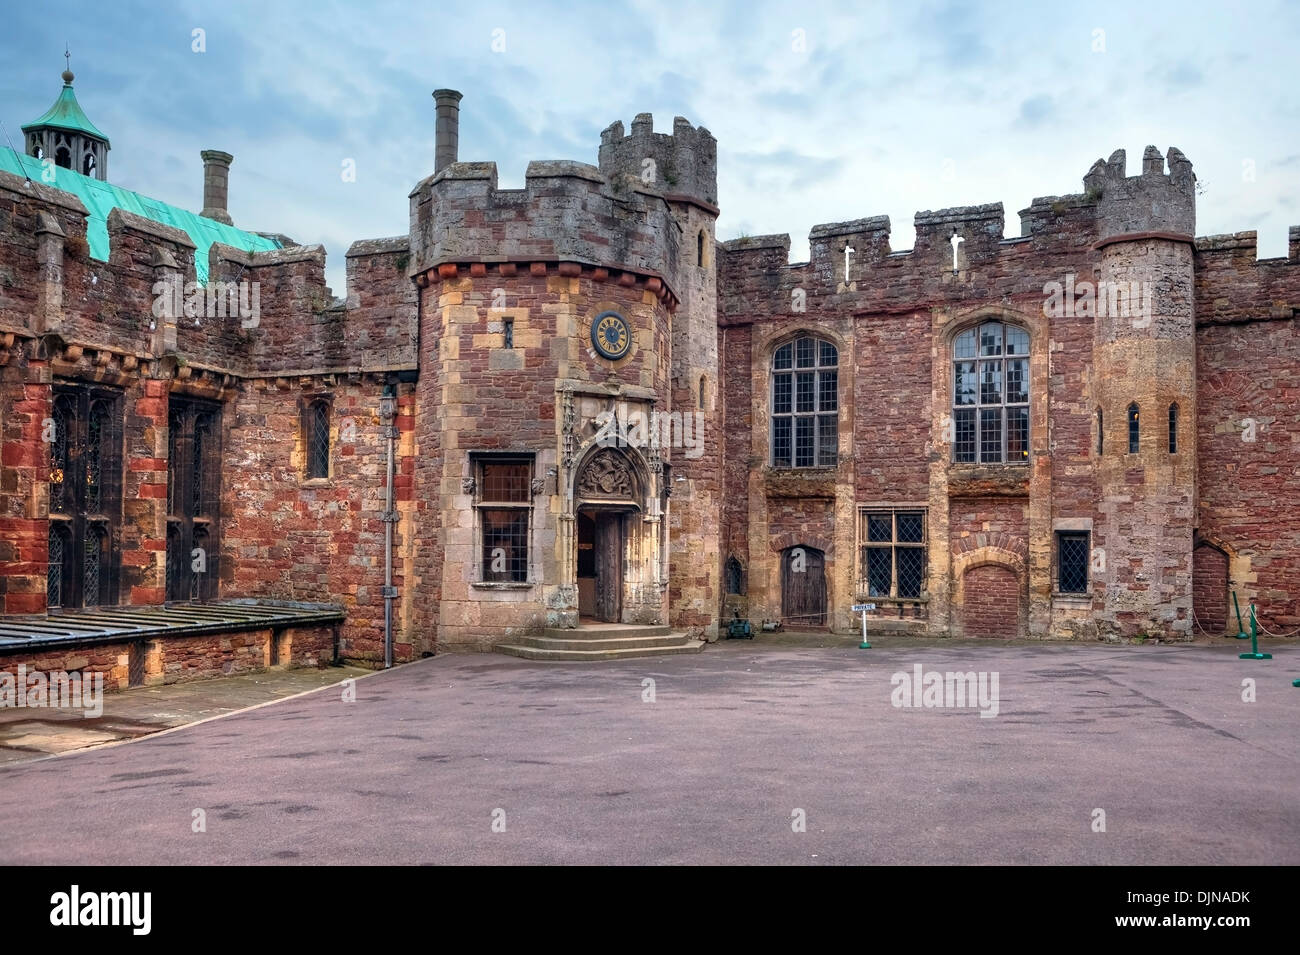 Berkeley Castle, Gloucestershire, England, United Kingdom - Stock Image